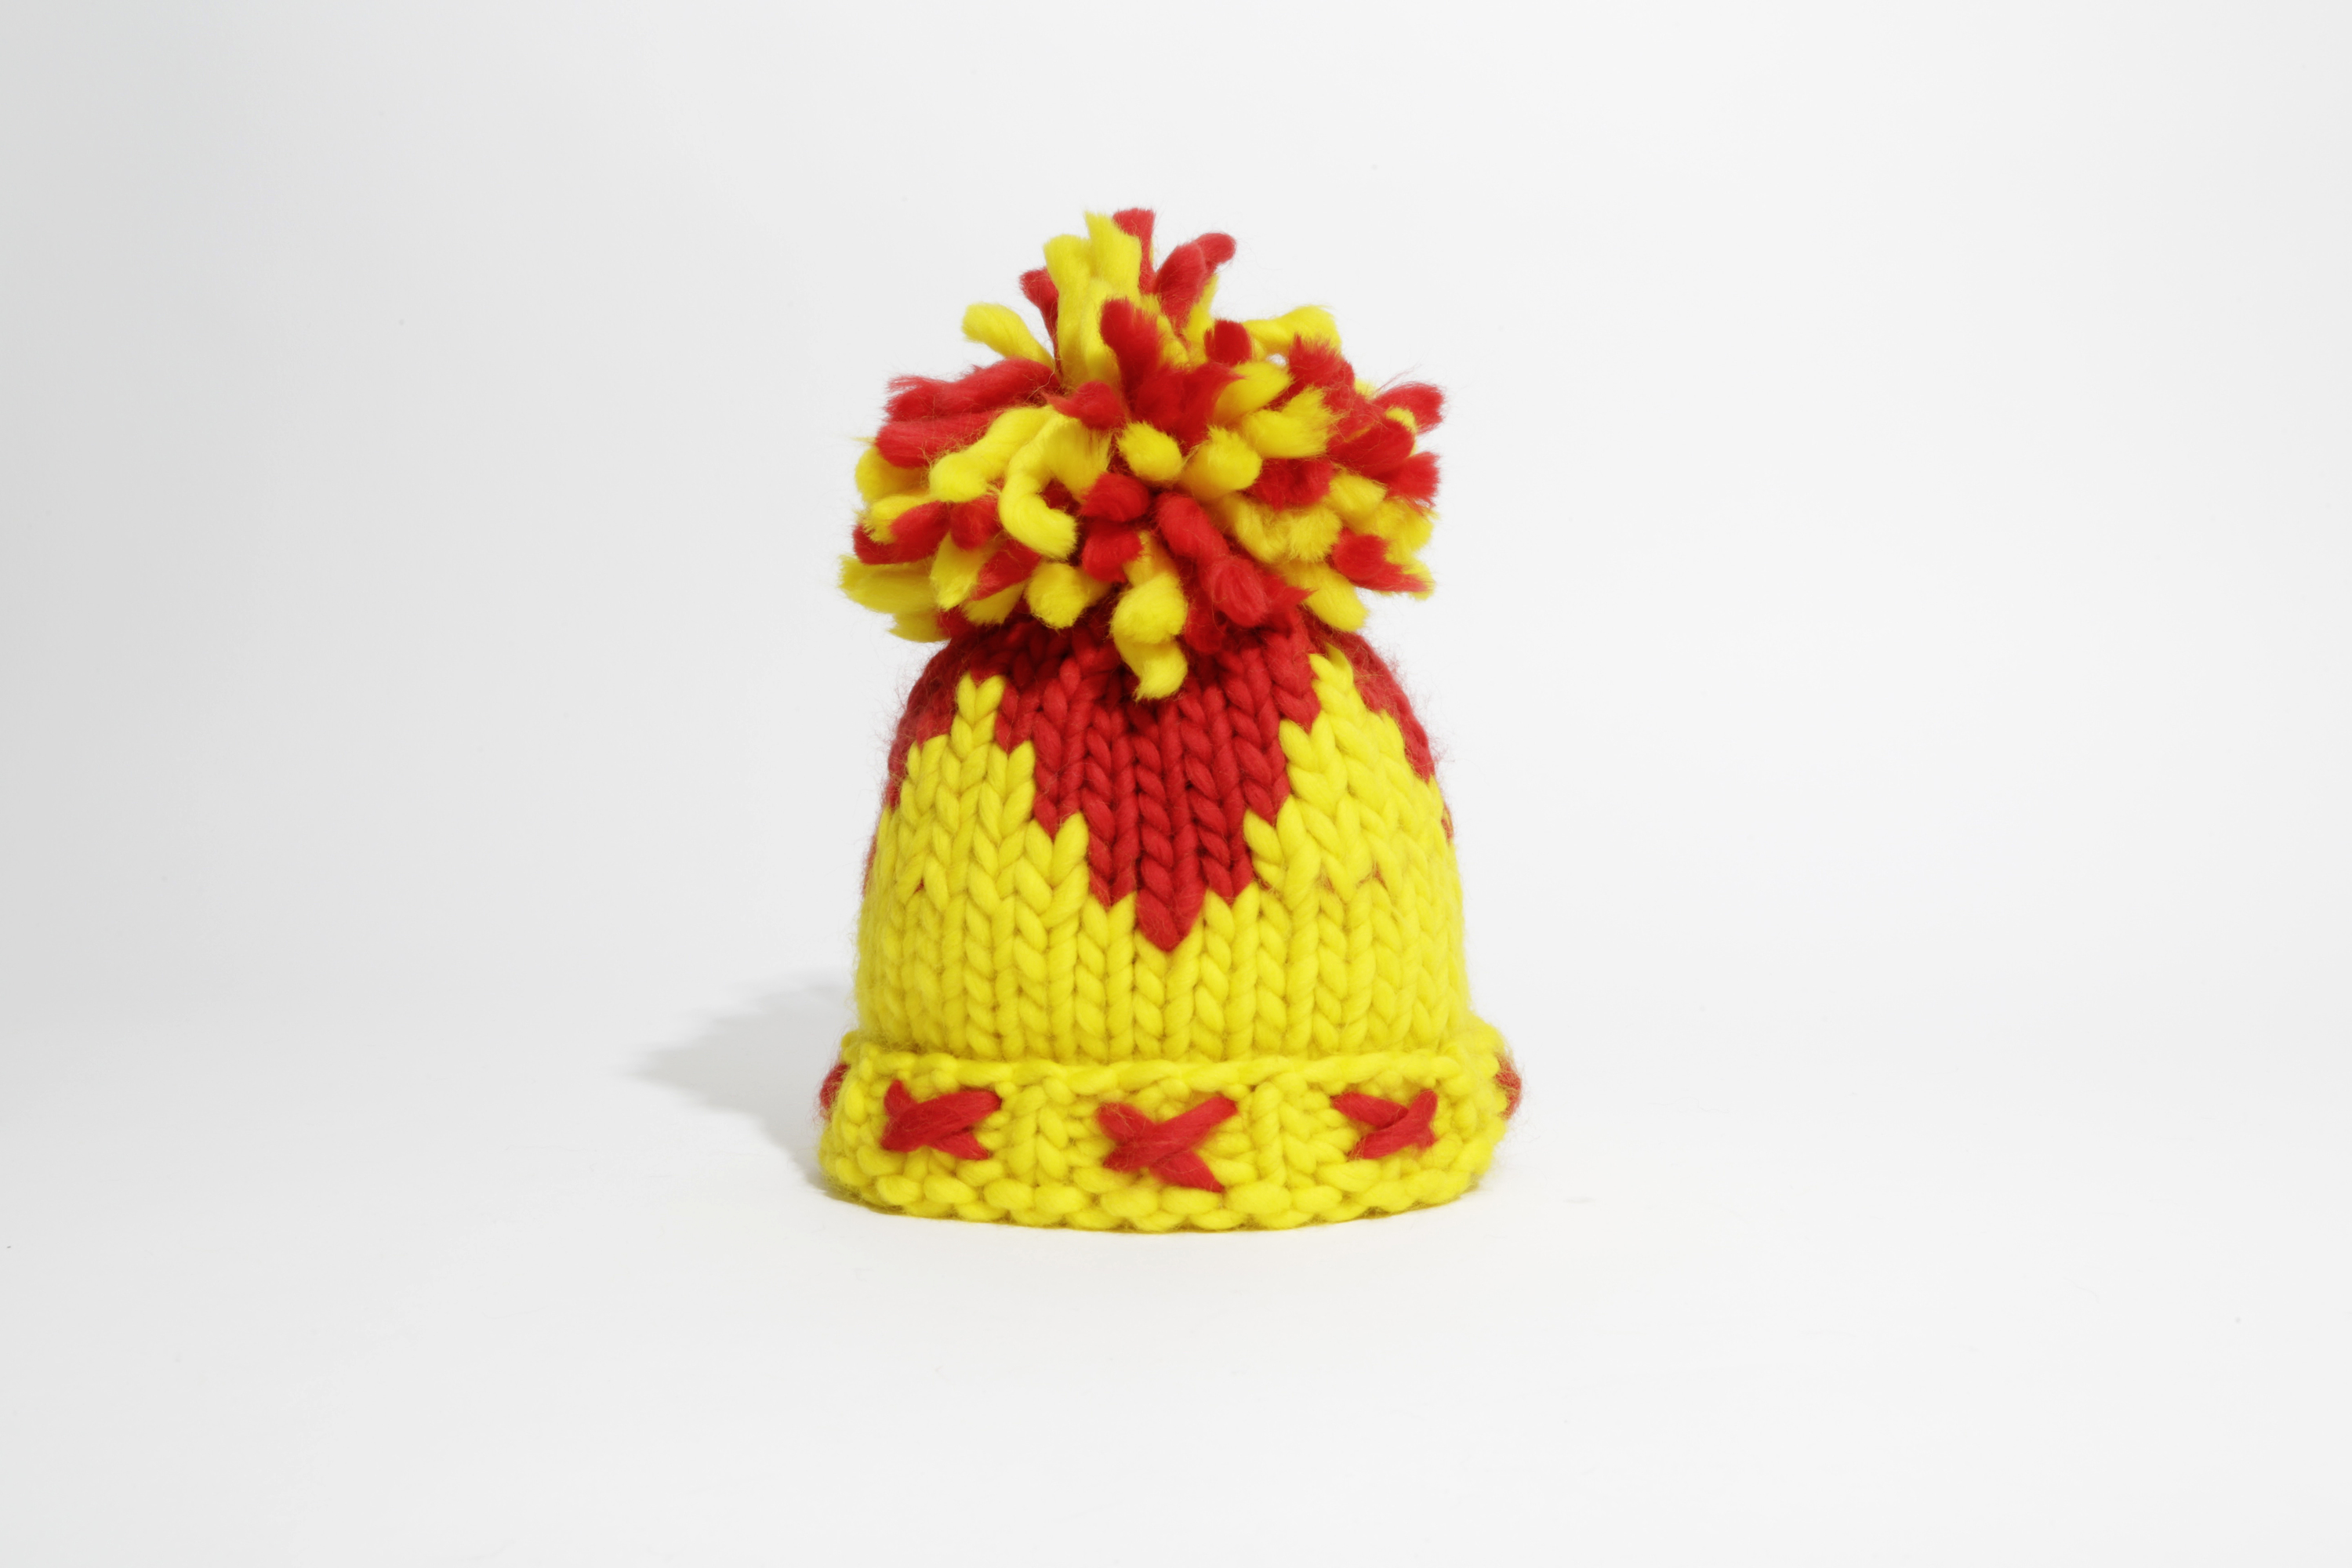 Crown hat by Wool and the Gang x Climate Revolution, £85